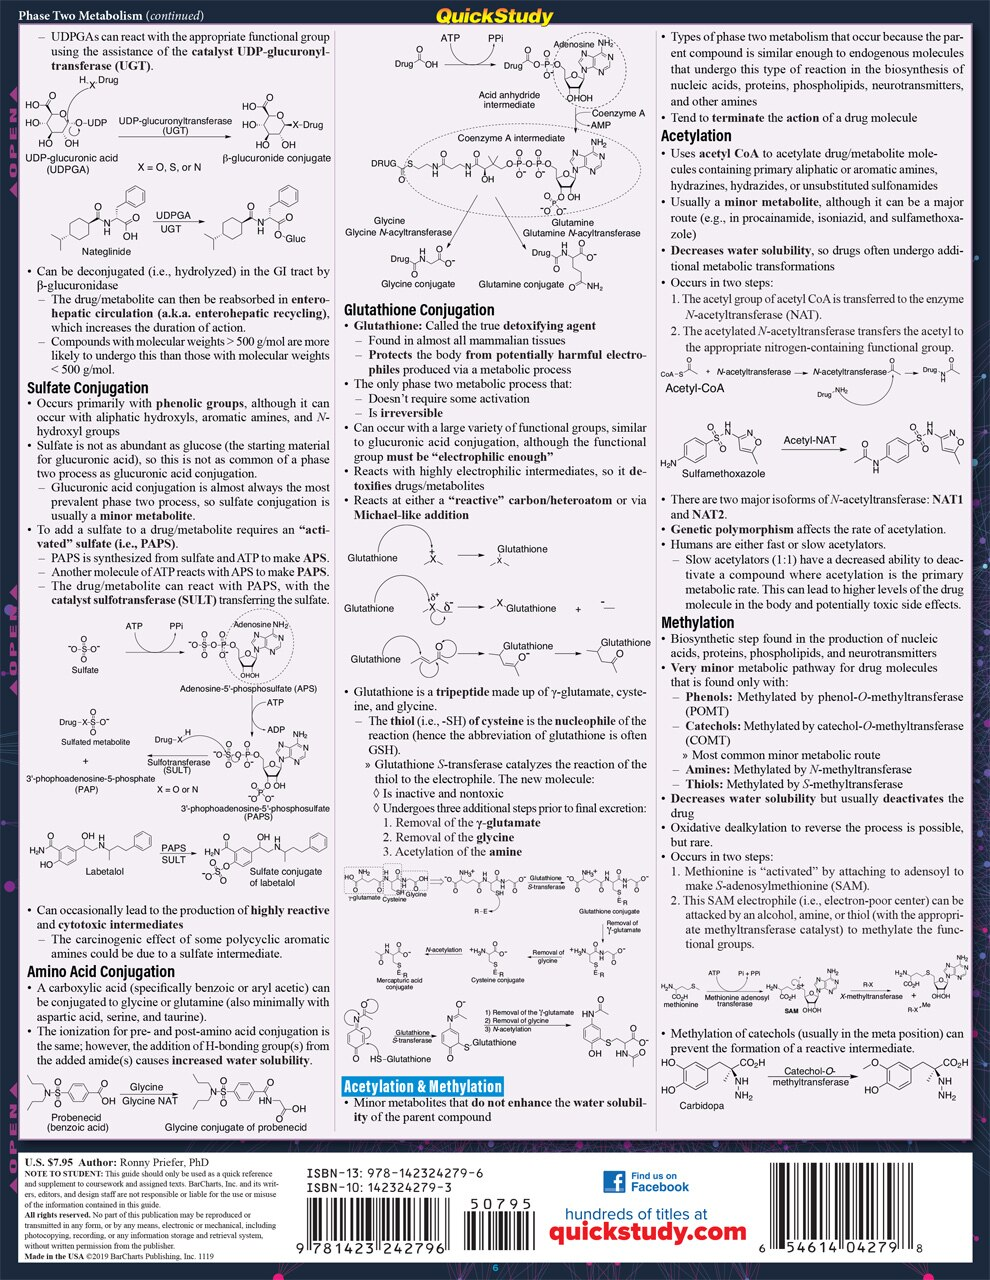 Quick Study QuickStudy Medicinal Chemistry Laminated Study Guide BarCharts Publishing Medical Science Reference Back Image